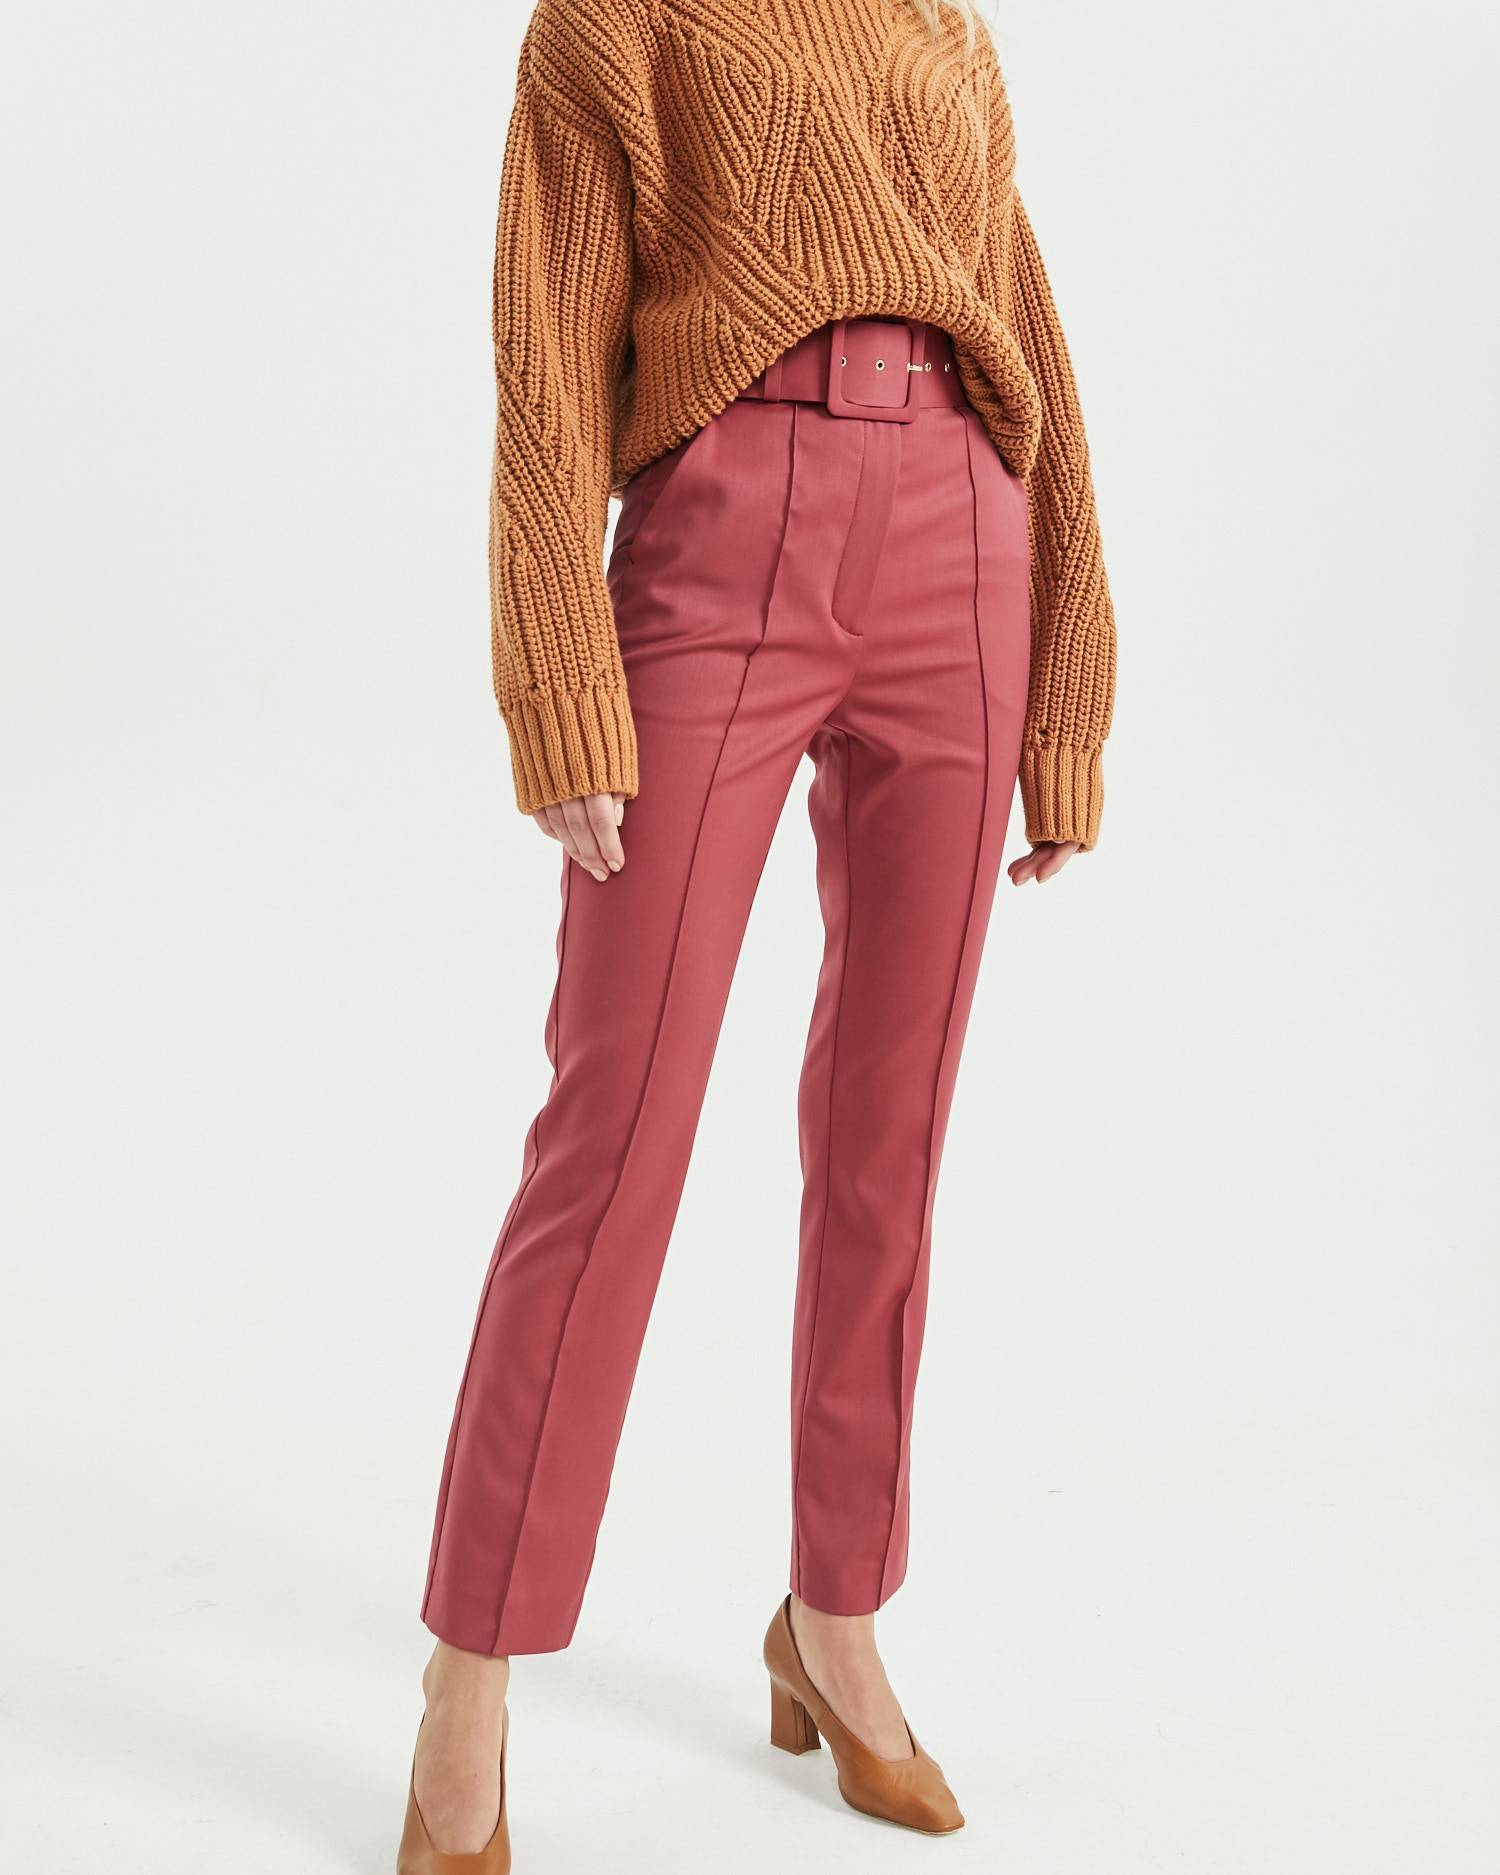 Fitted wool pants with decorative stitching